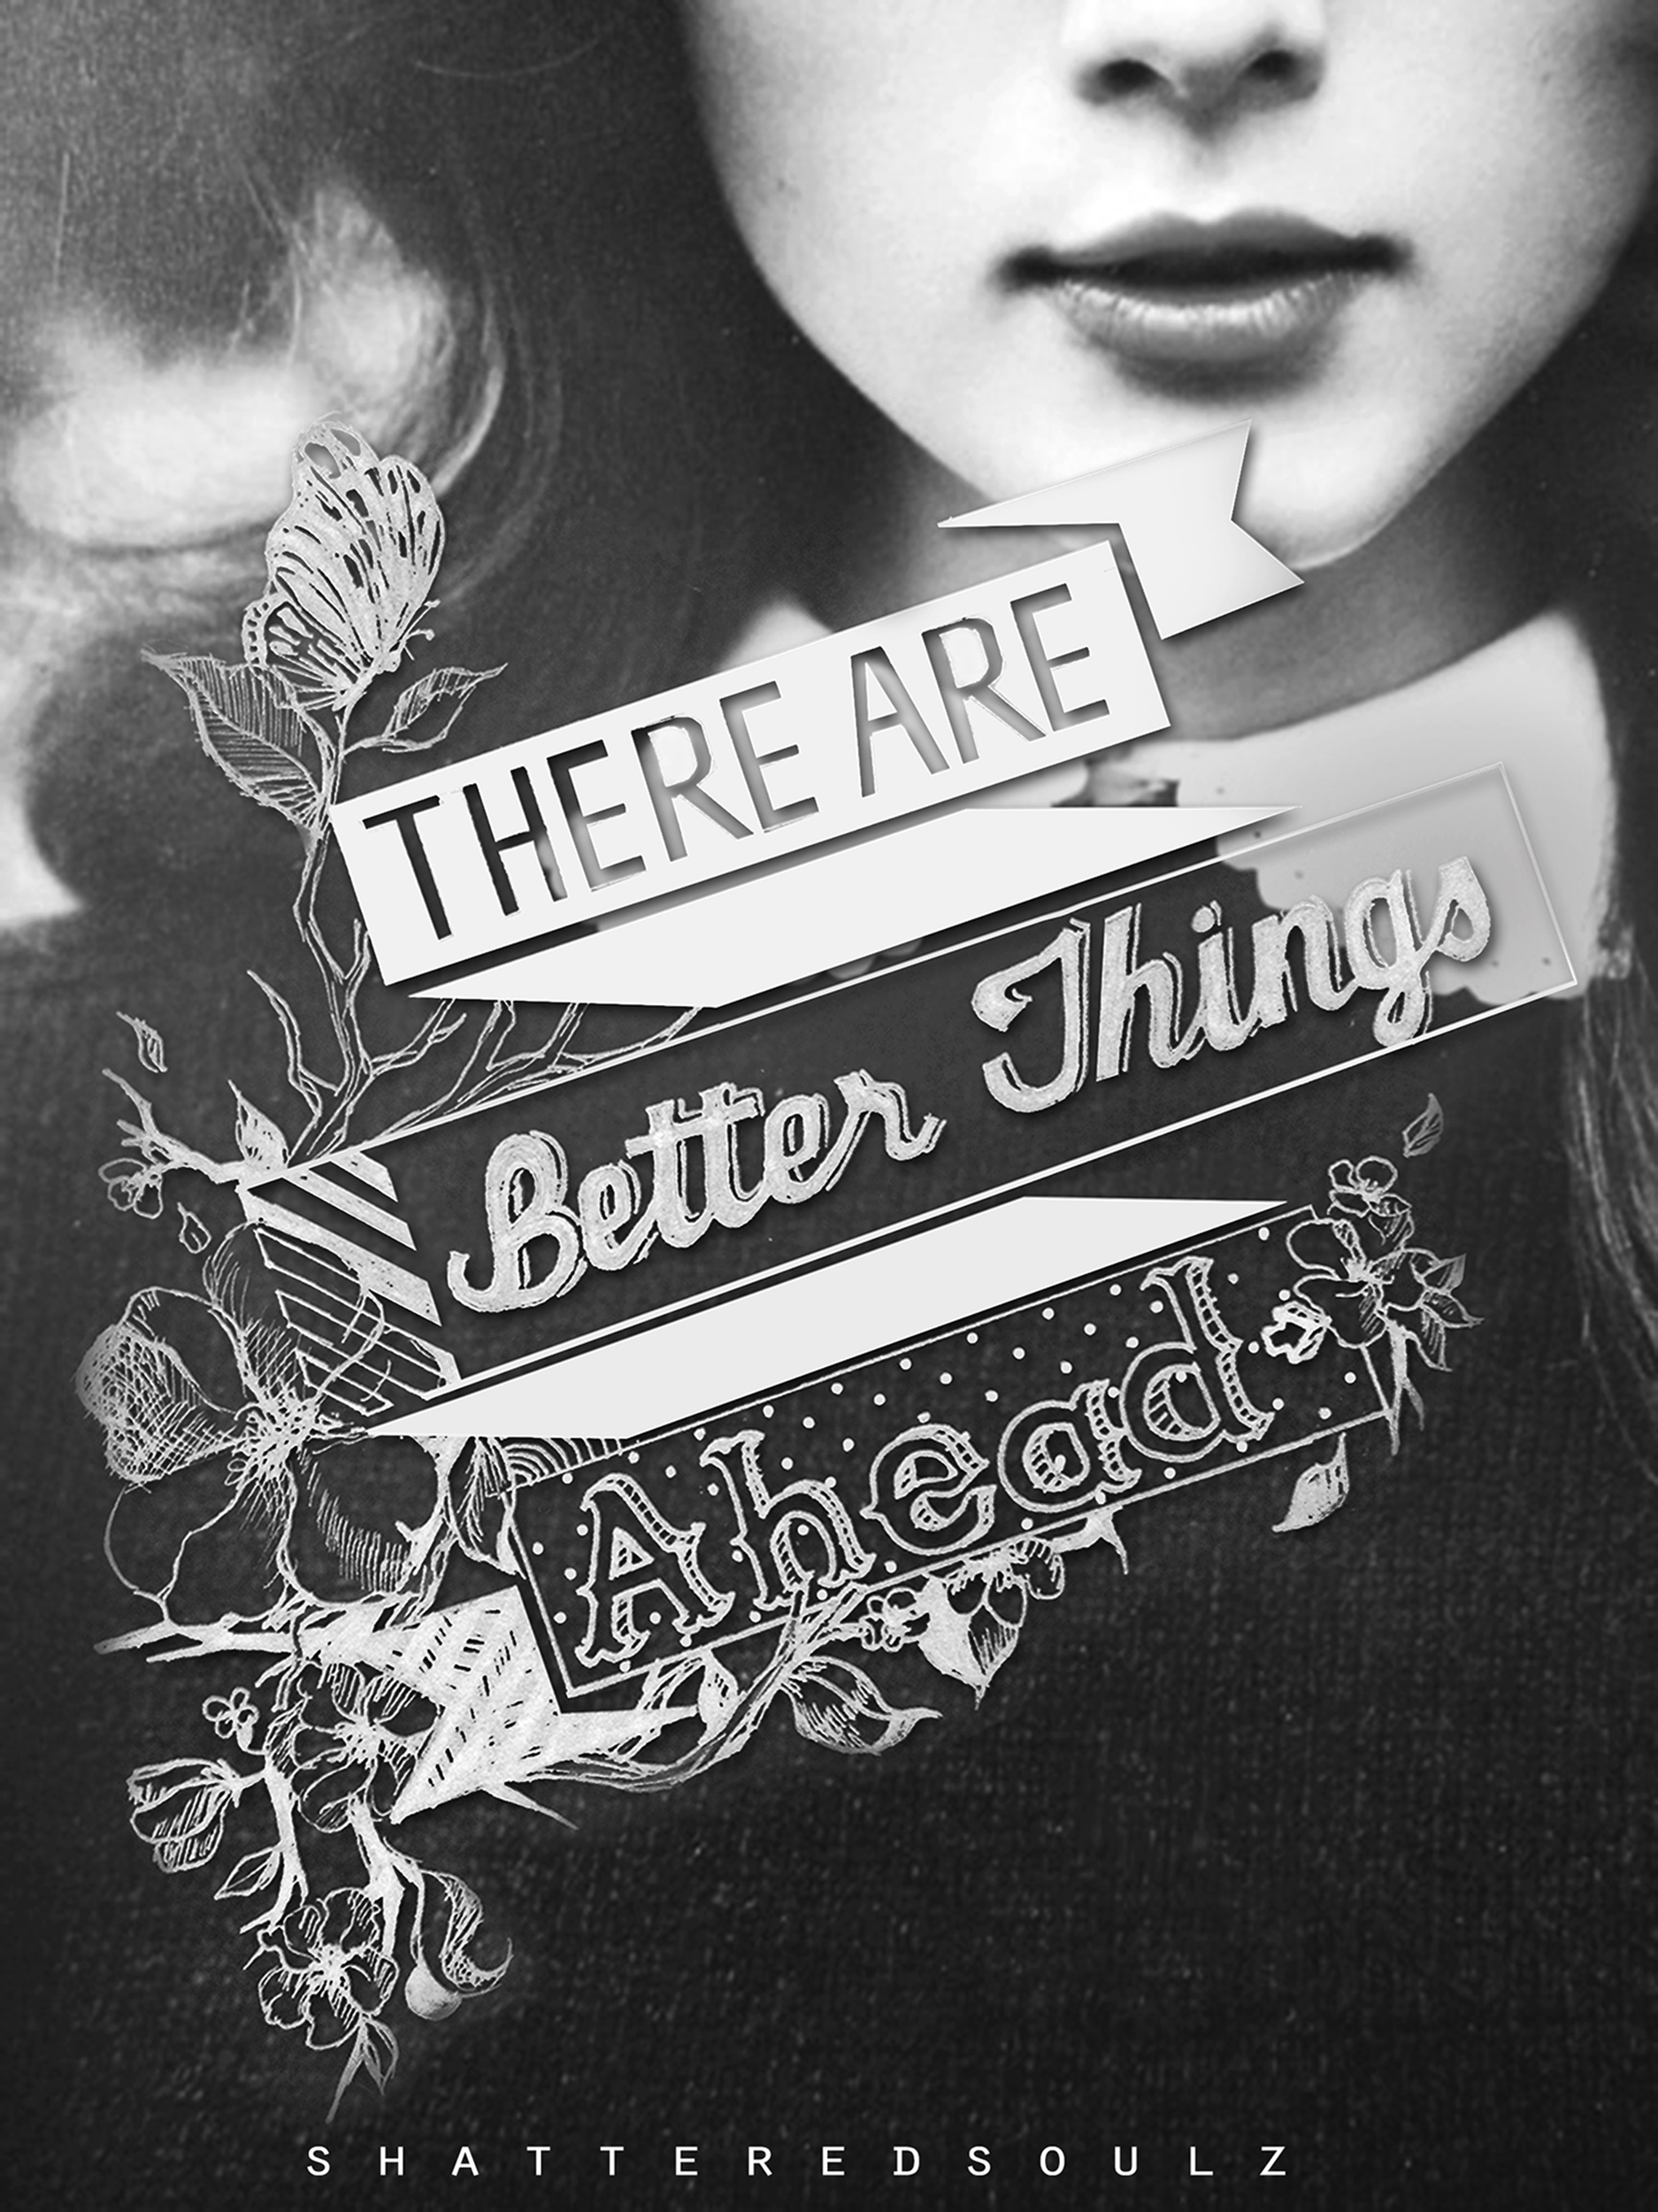 There are better things ahead by TheShatteredSoulz